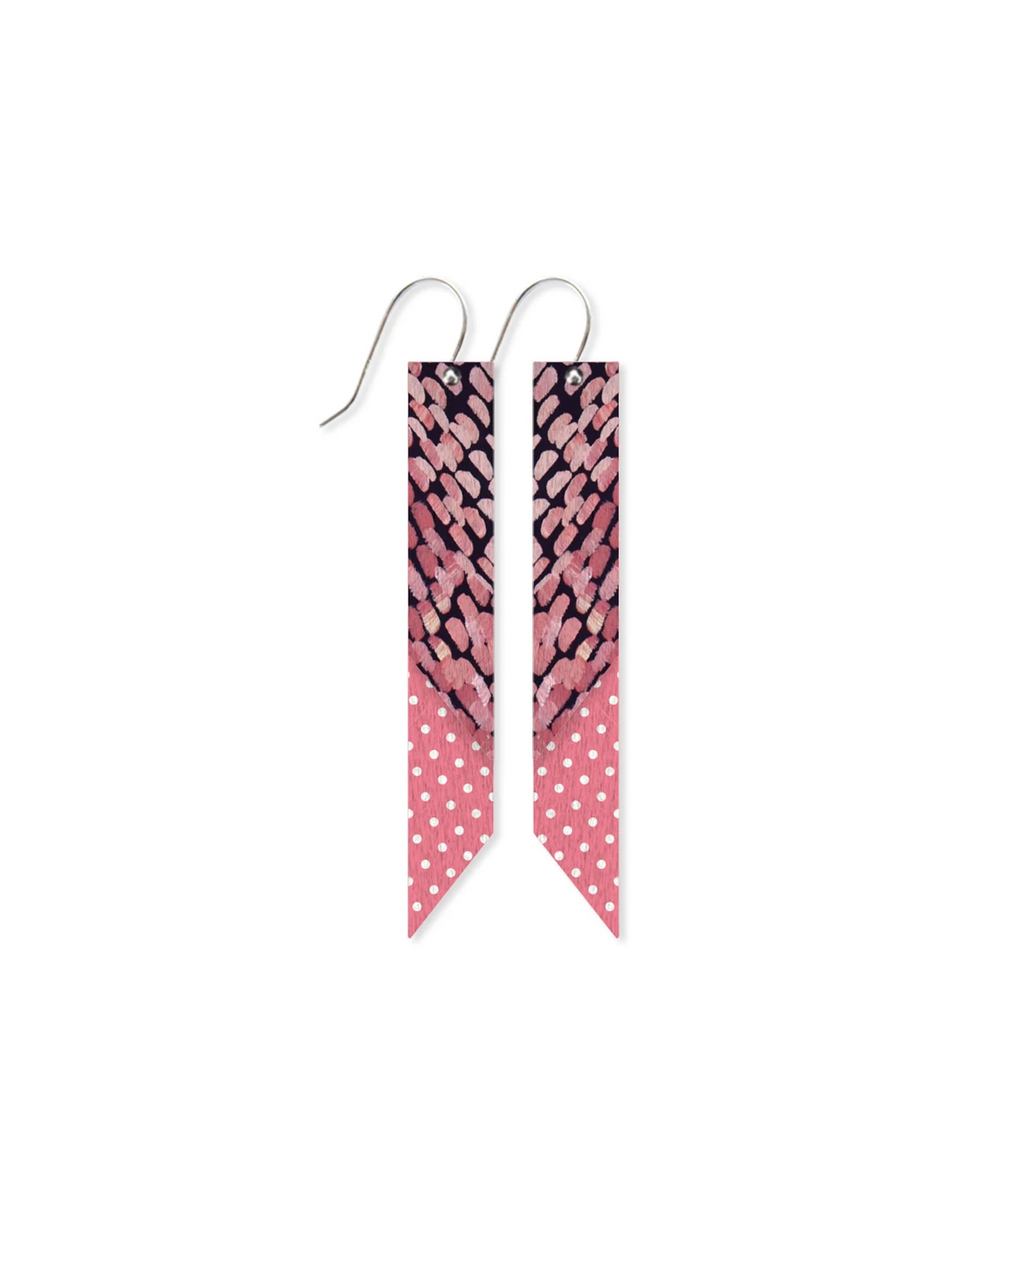 Layered Angled Bar Drop Earrings | Dreaming